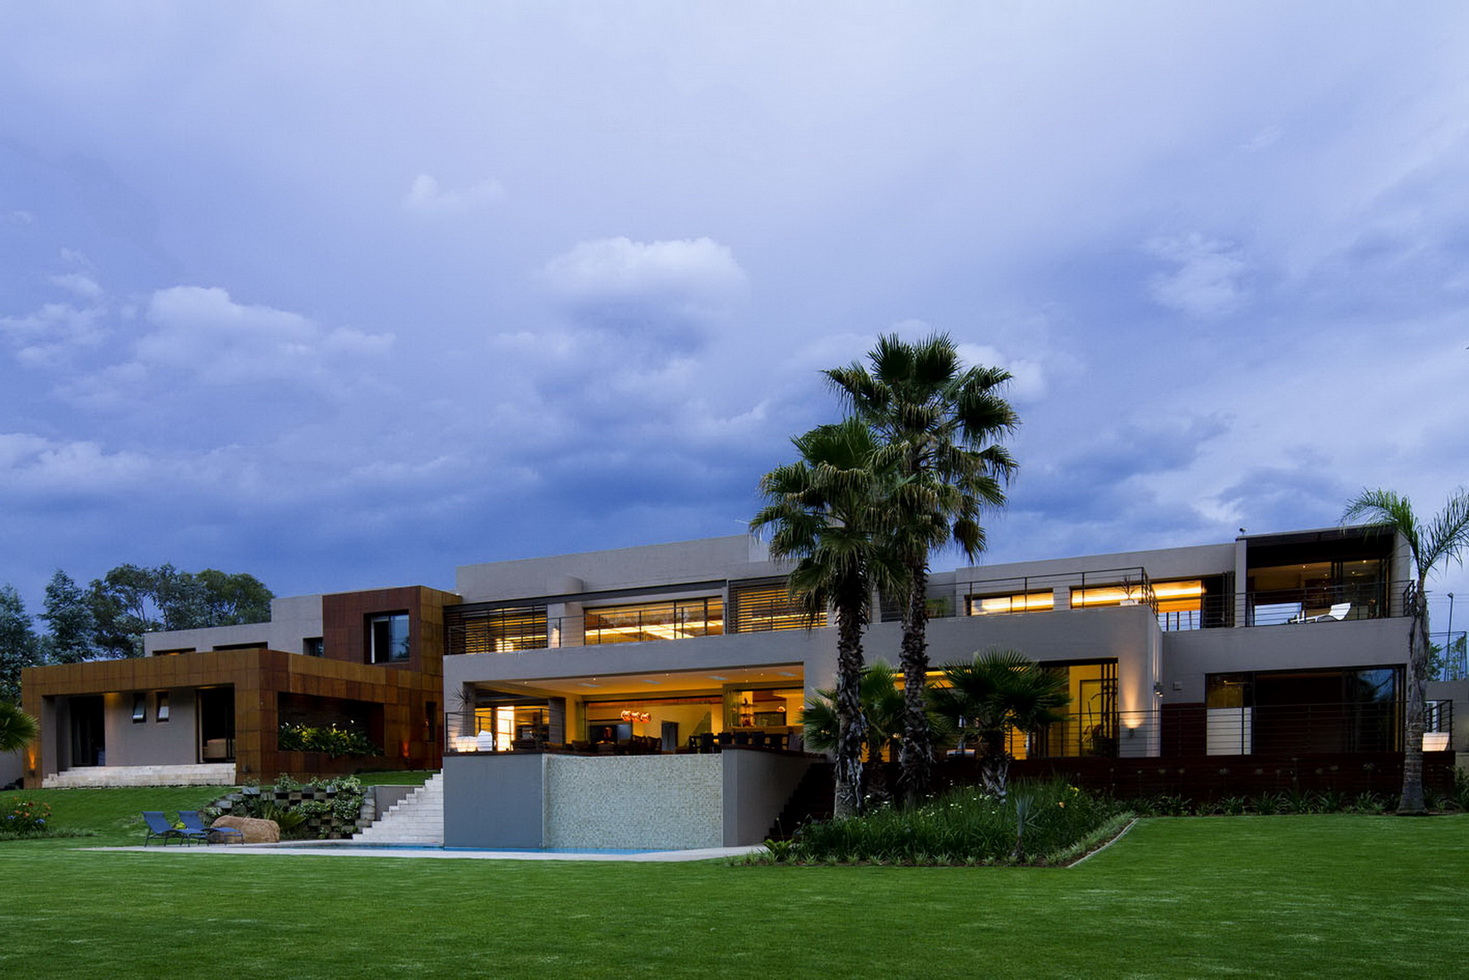 House Sed Architect Magazine Nico Van Der Meulen Architects Johannesburg South Africa Multifamily New Construction Additions And Alterations